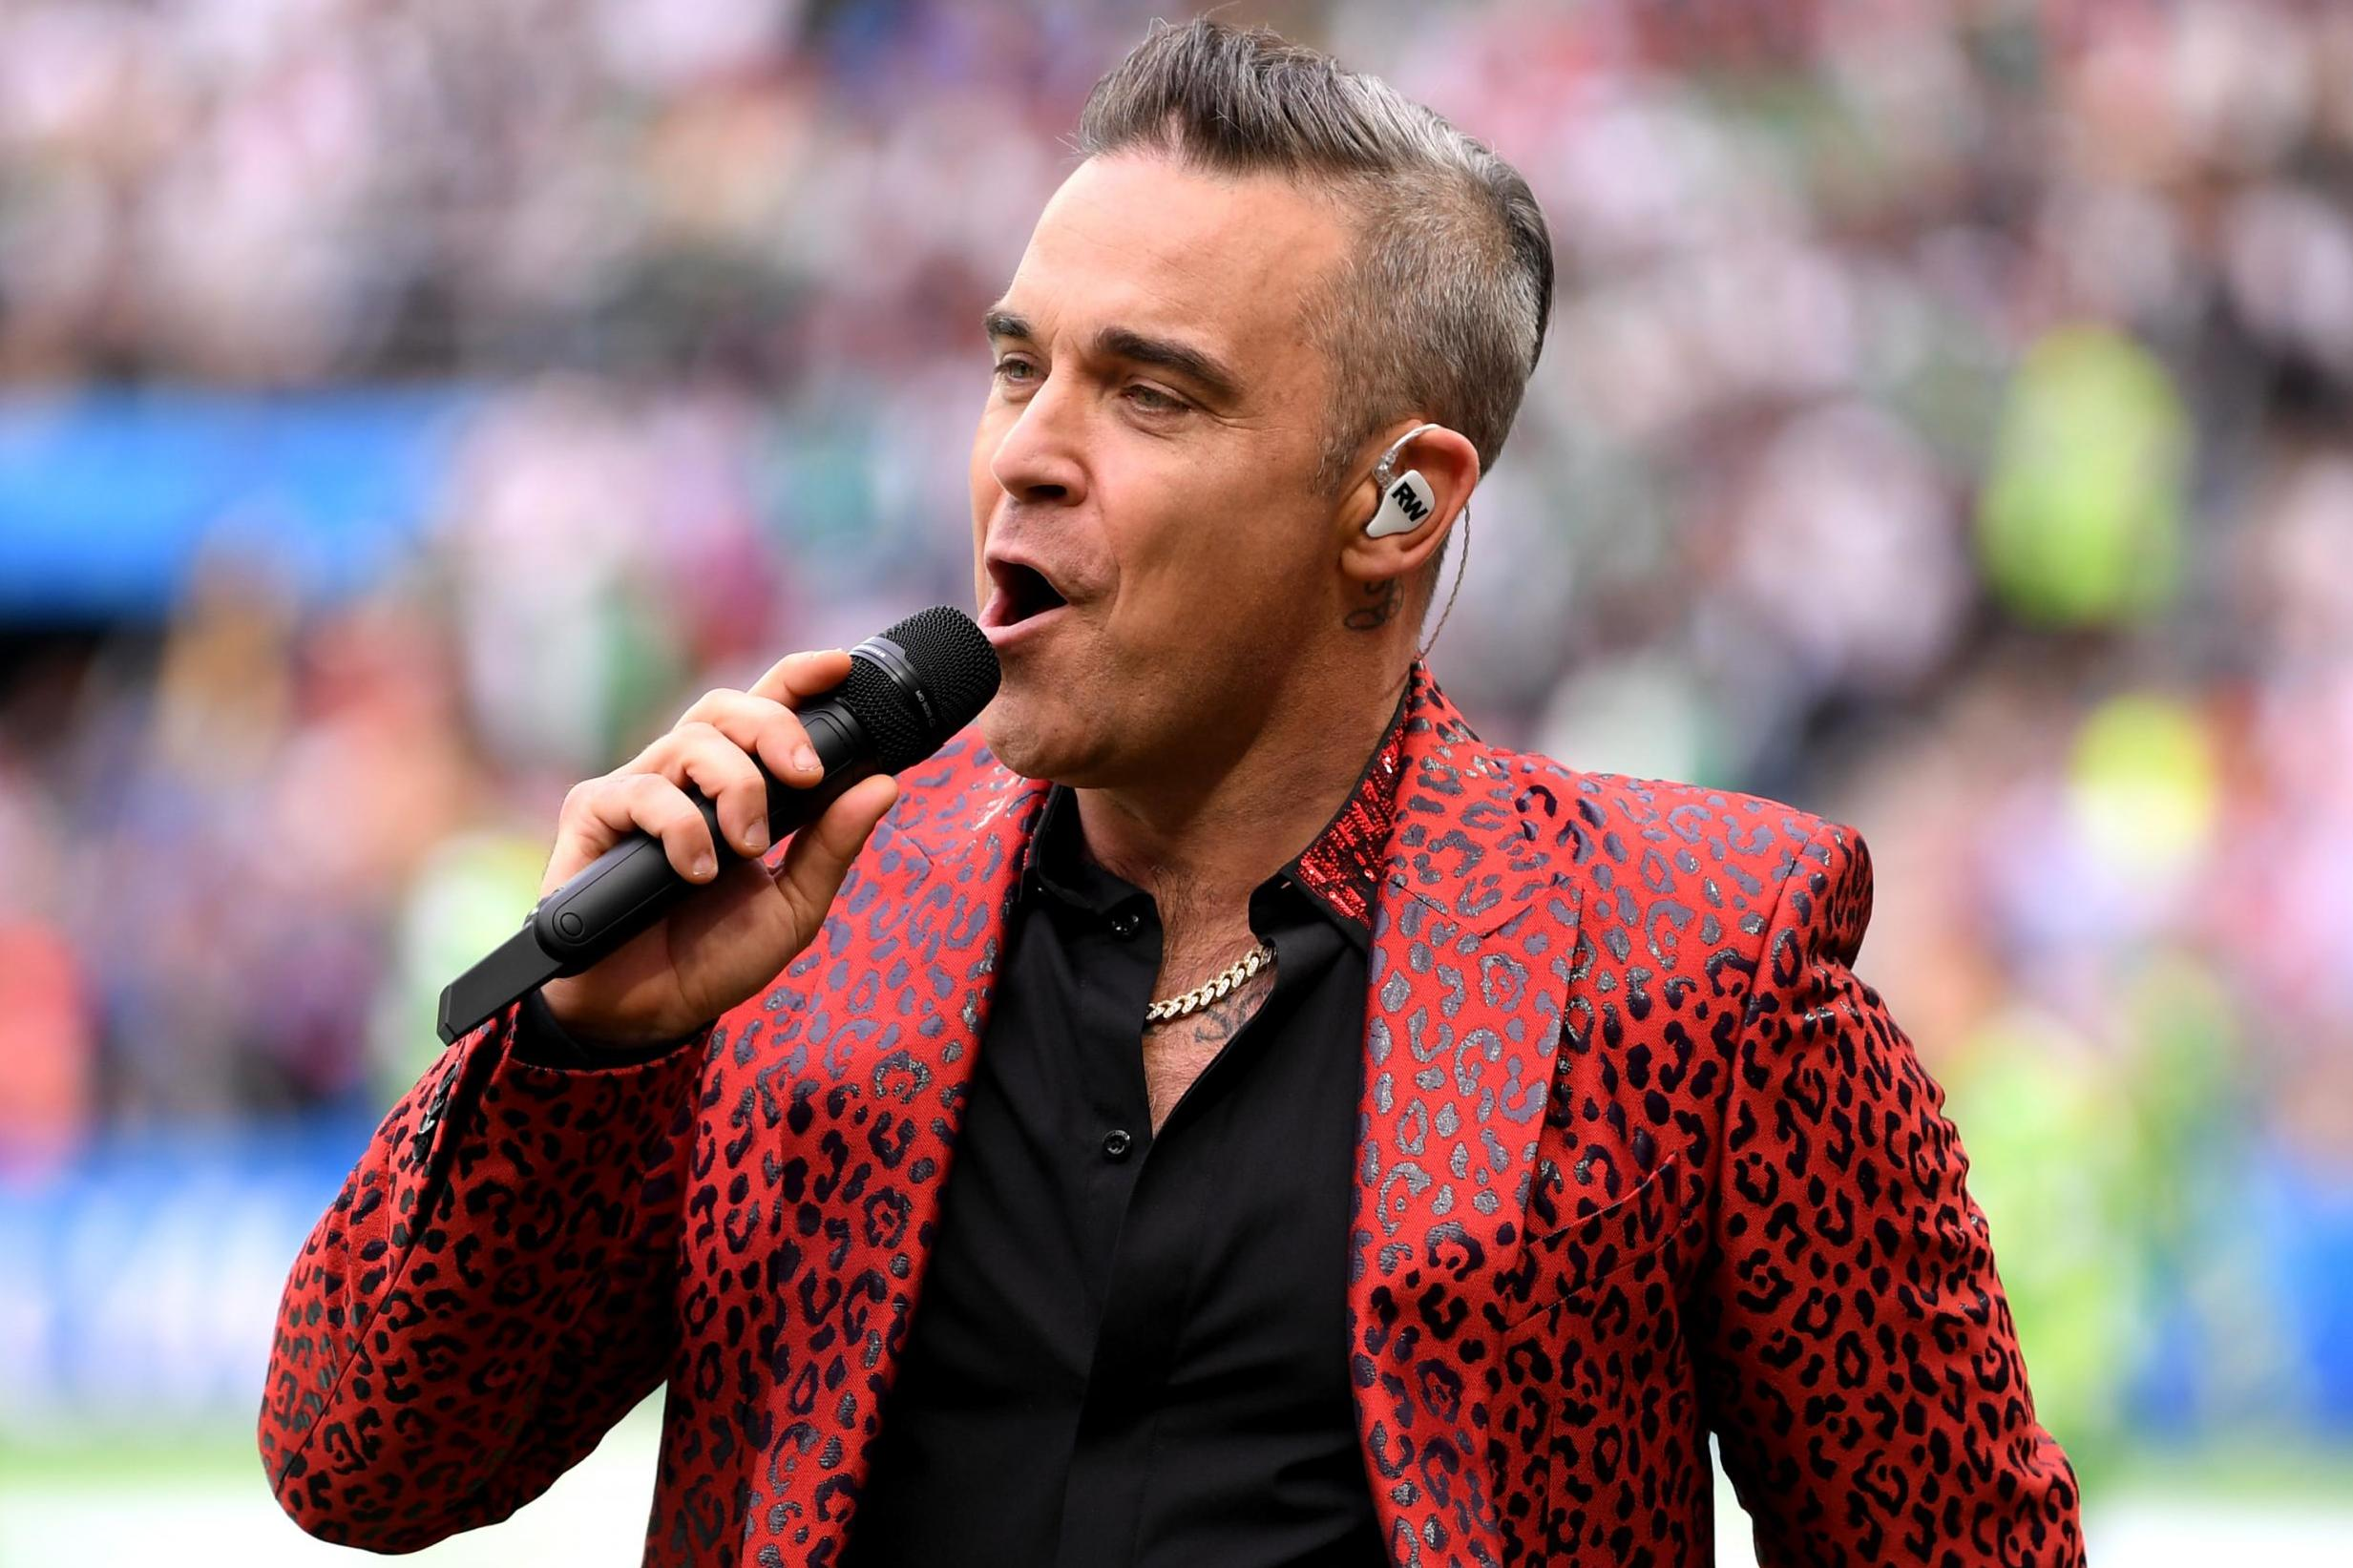 Robbie Williams wins five-year battle with Led Zeppelin s Jimmy Page over  underground swimming pool e5778c04345b4